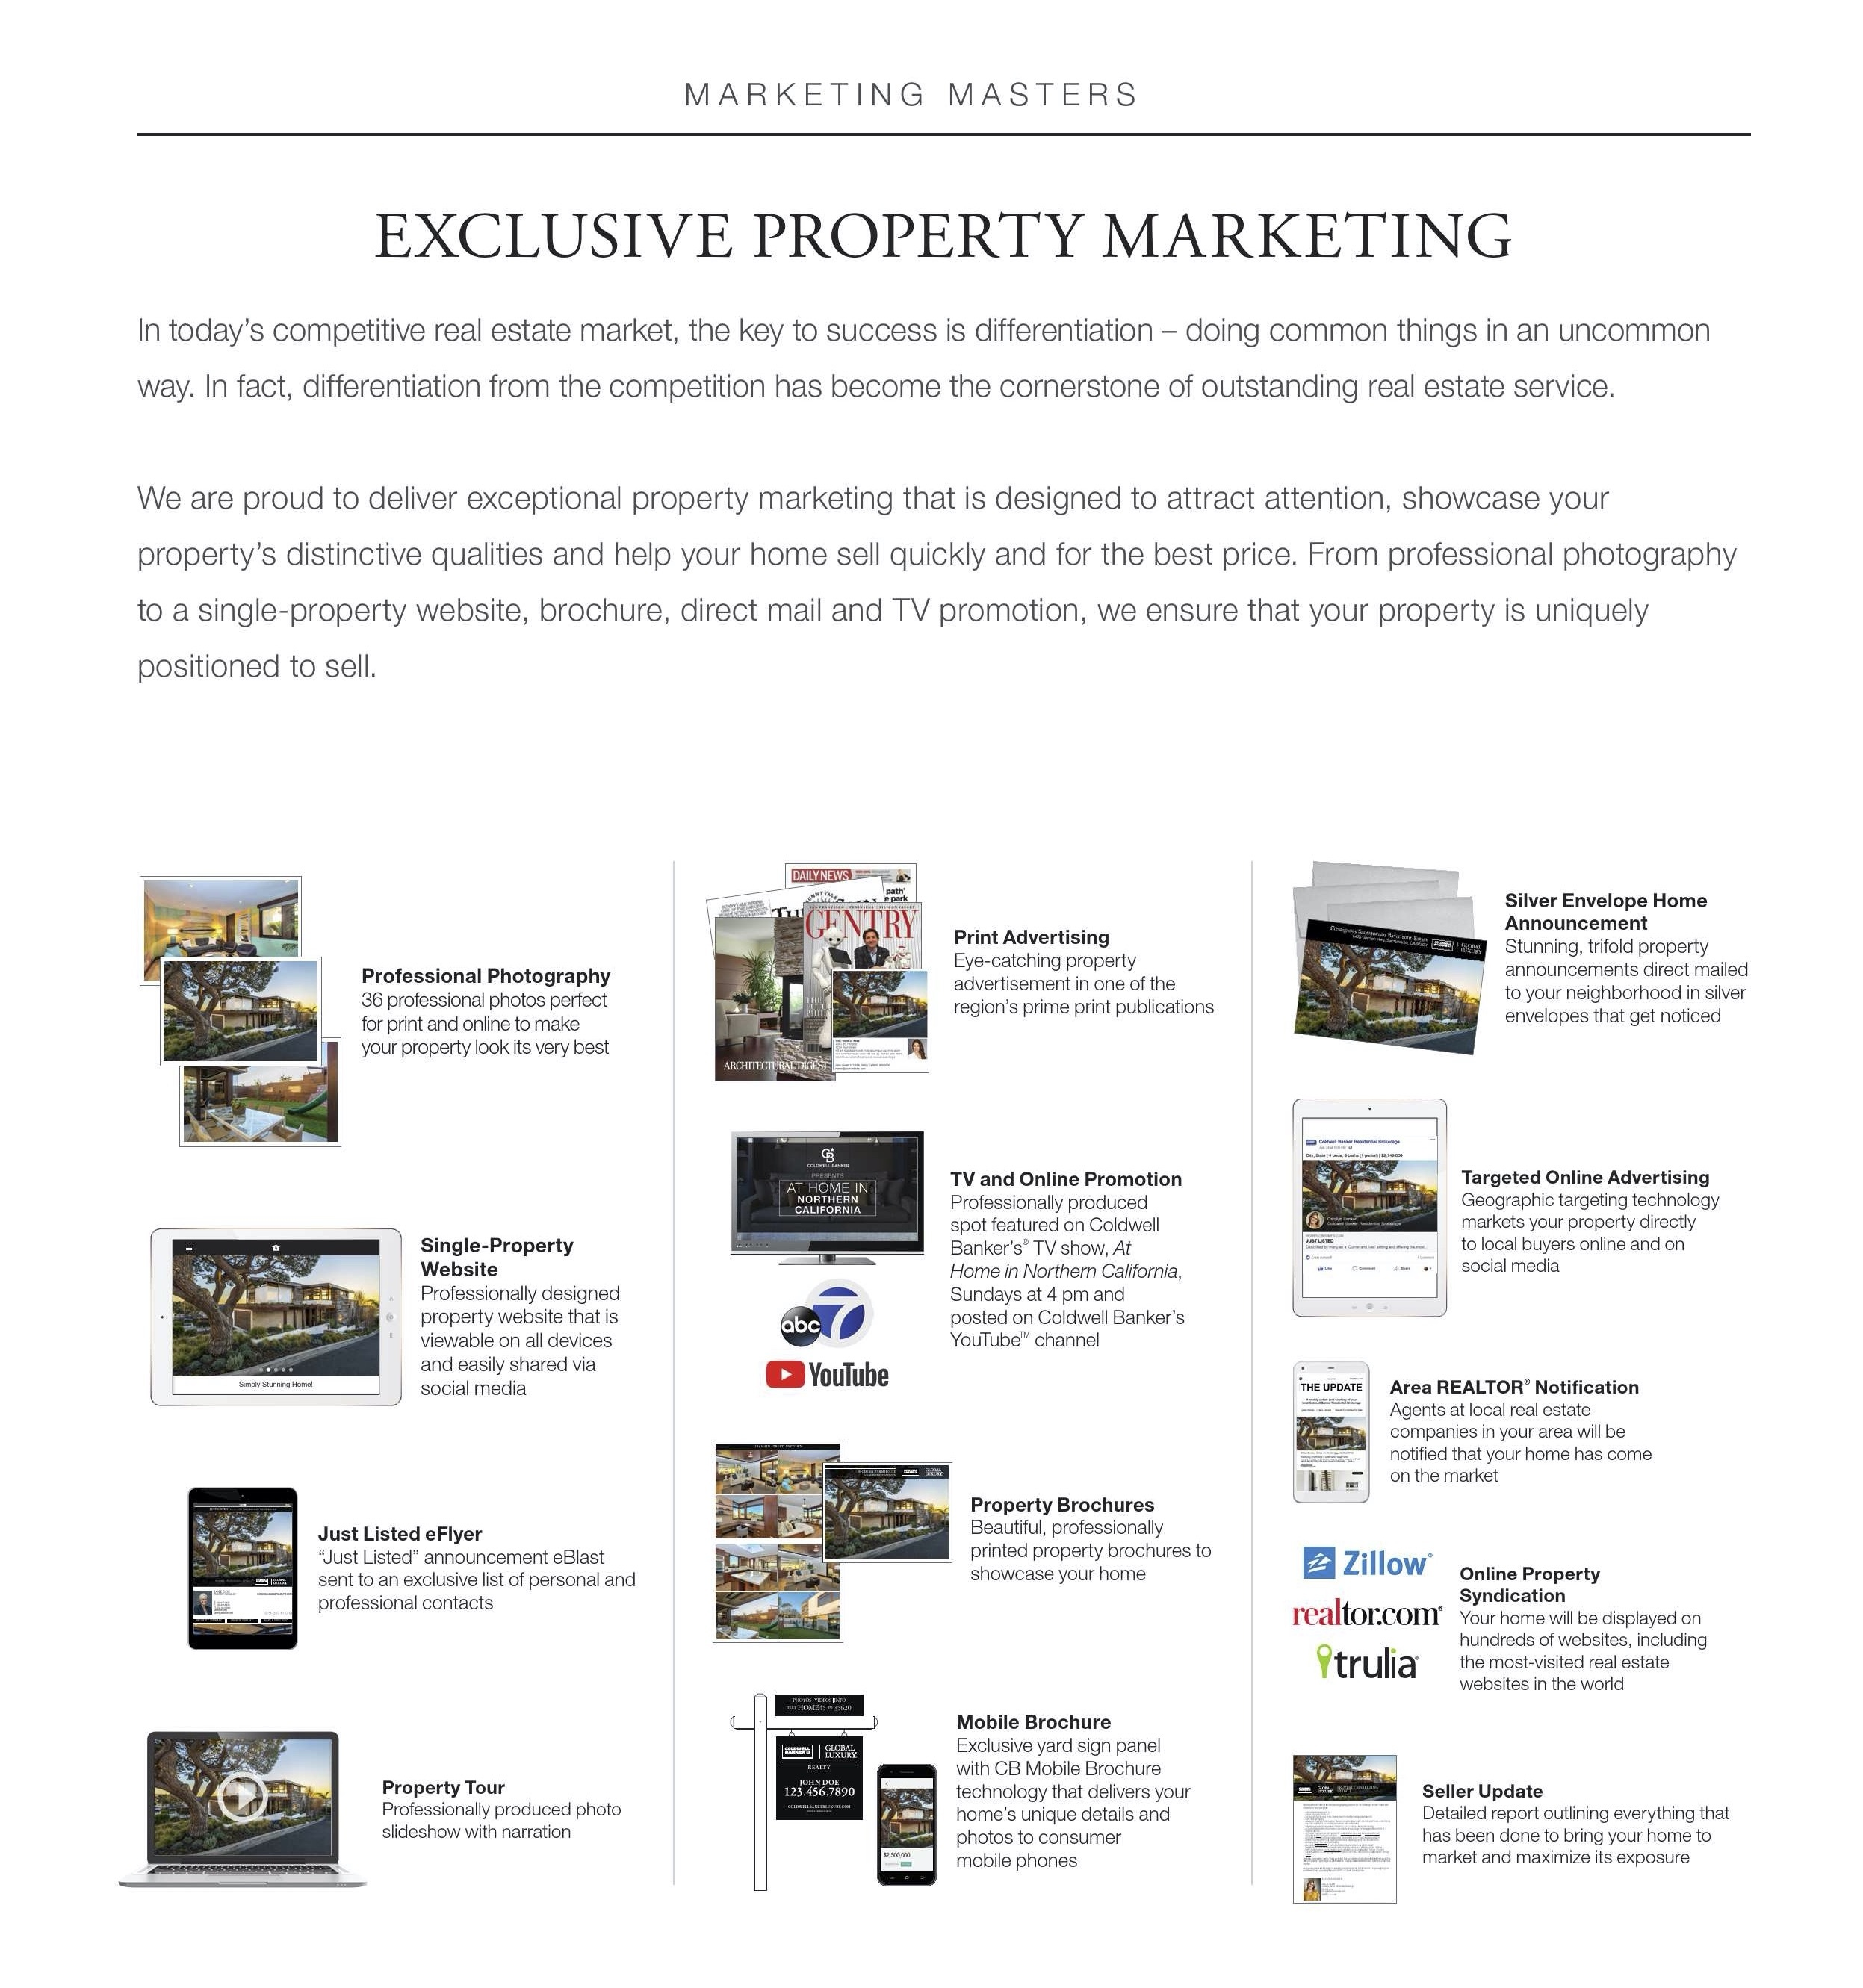 Exclusive Property Marketing for Listings